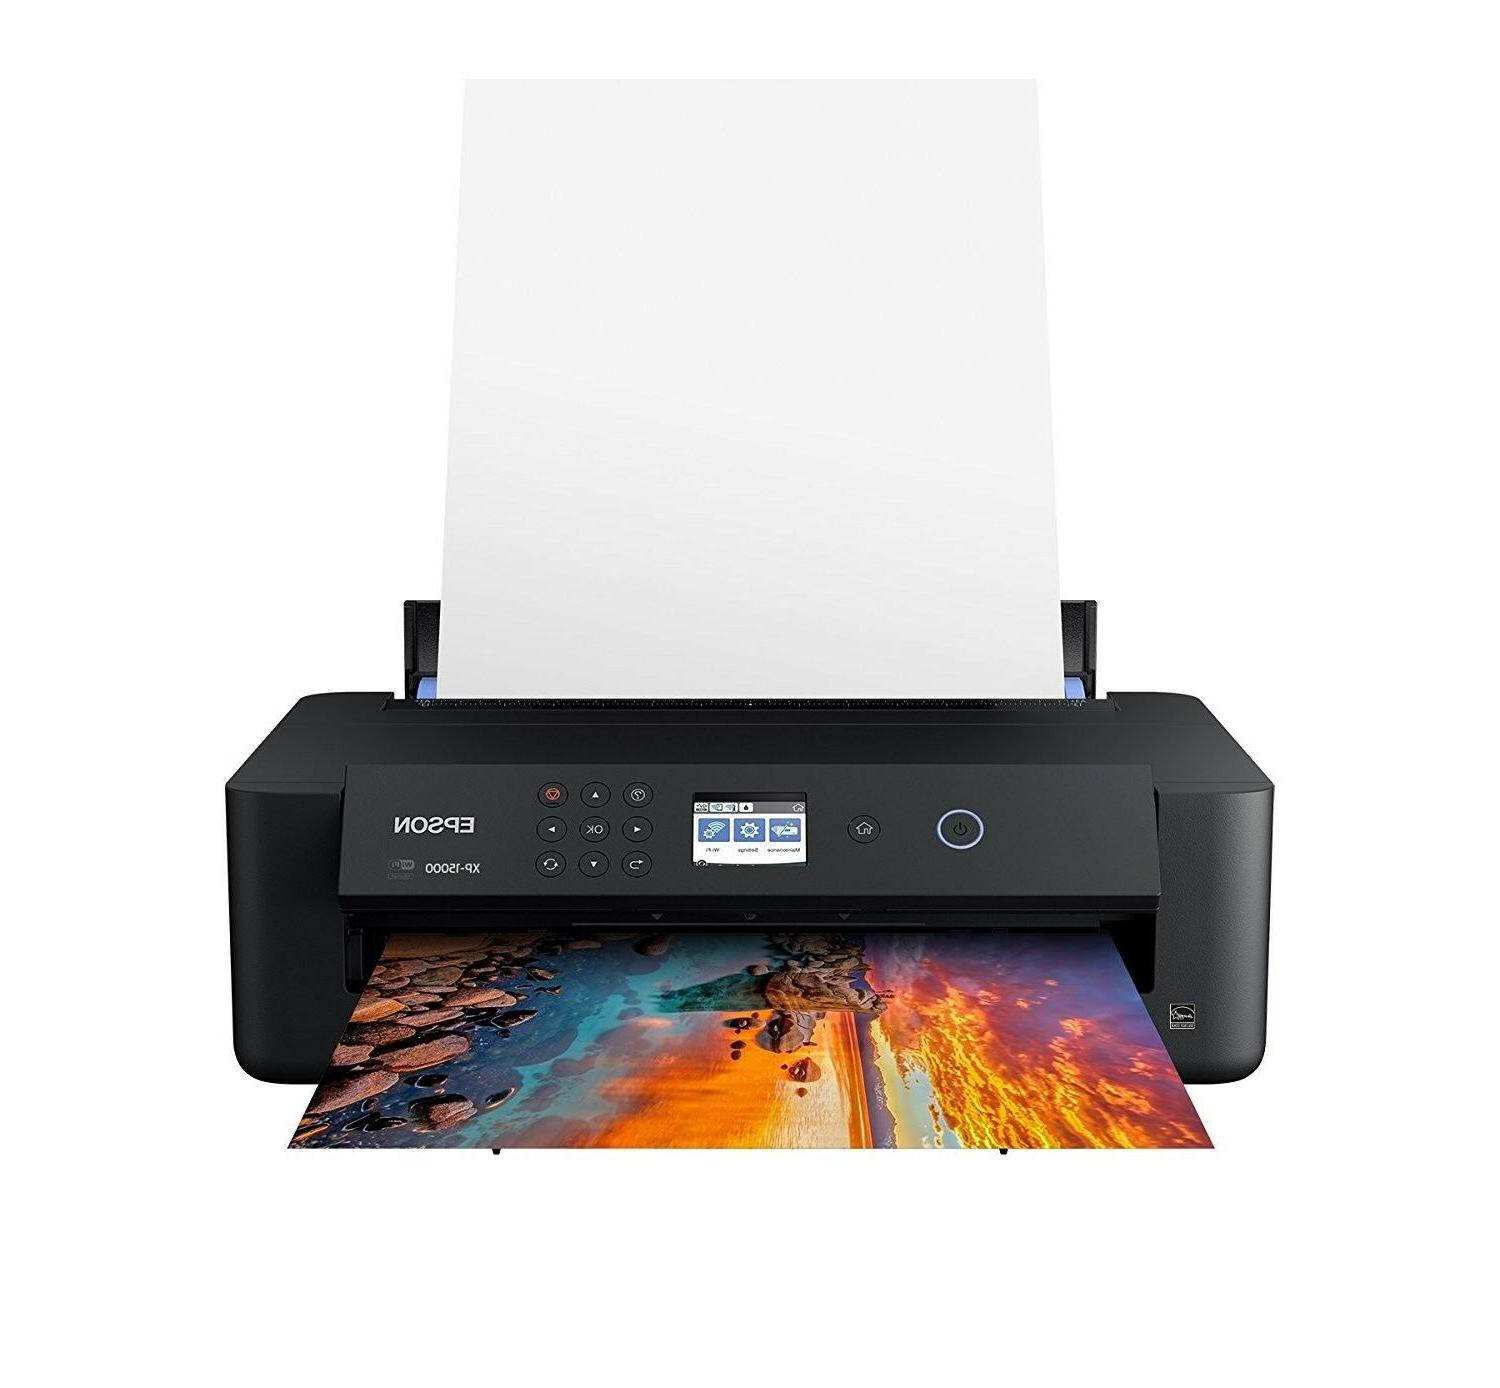 photo hd xp 15000 wireless color wide